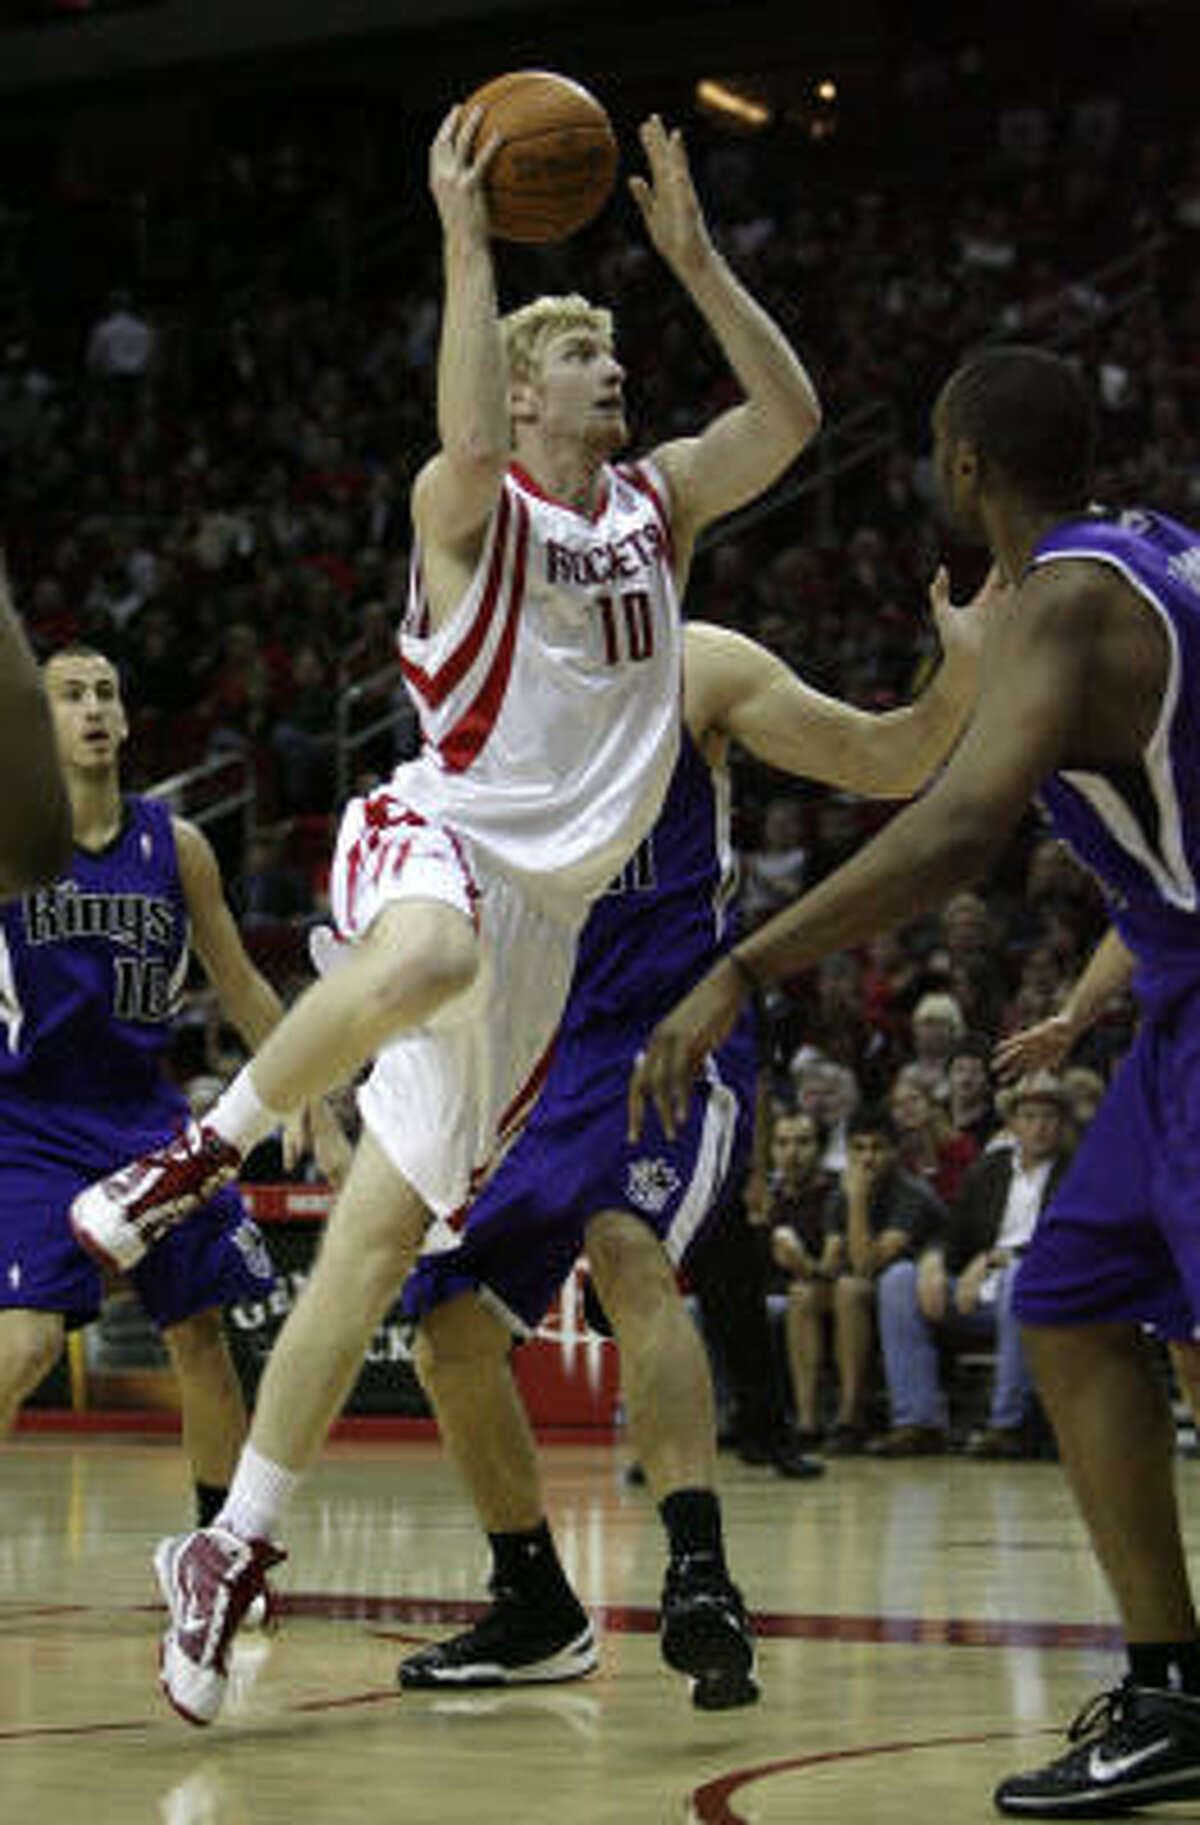 Rockets forward Chase Budinger will be in the starting lineup for the first time this season.